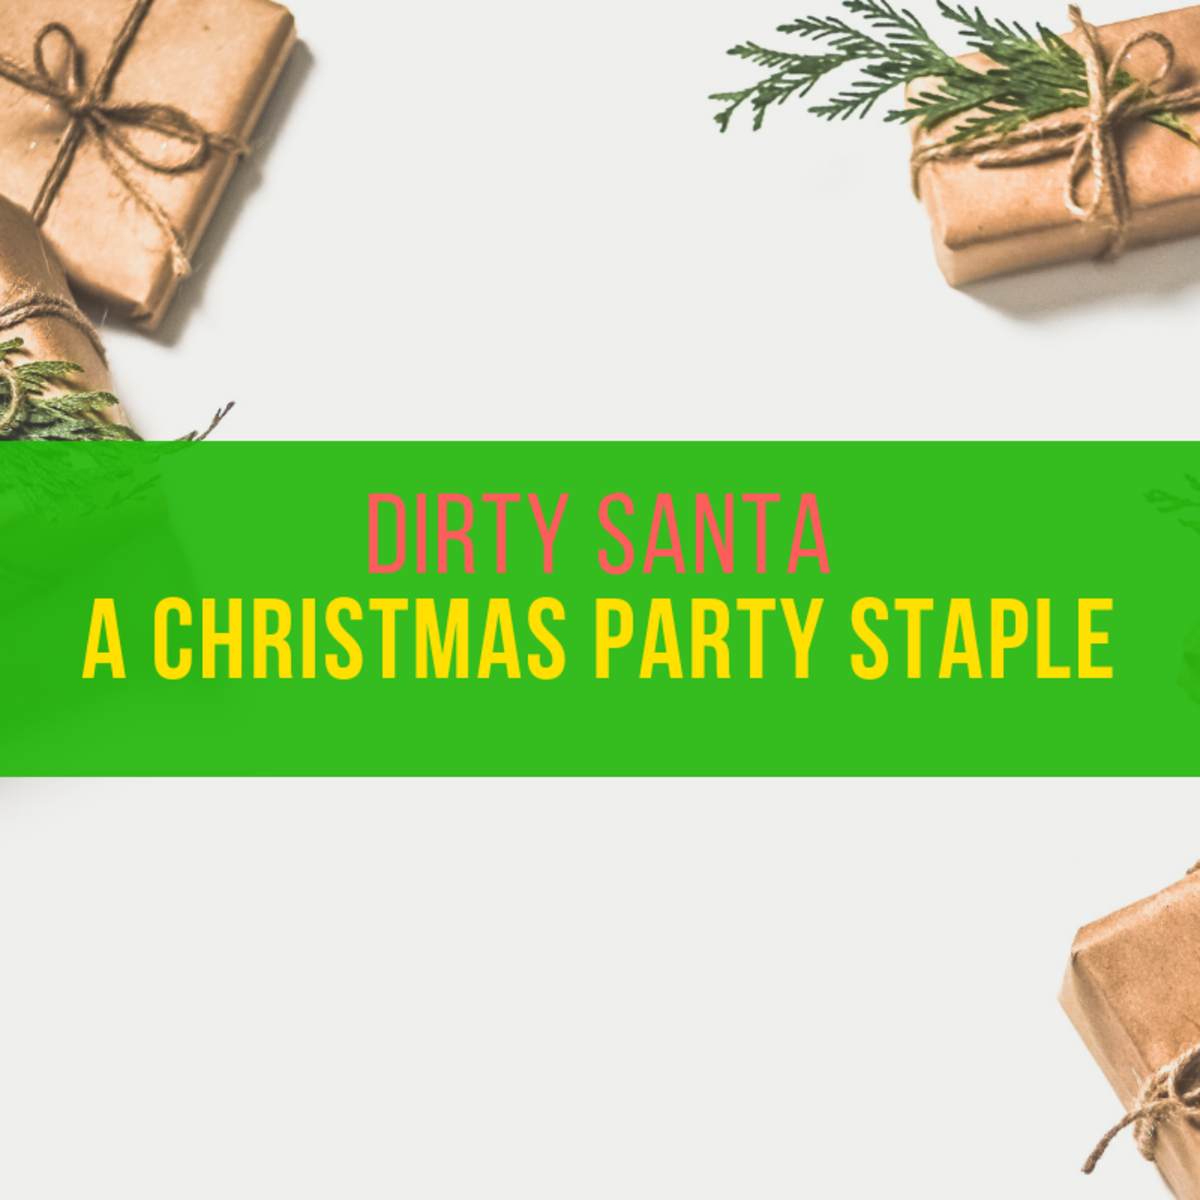 Dirty Santa is a fun spin on the holiday gift exchange.